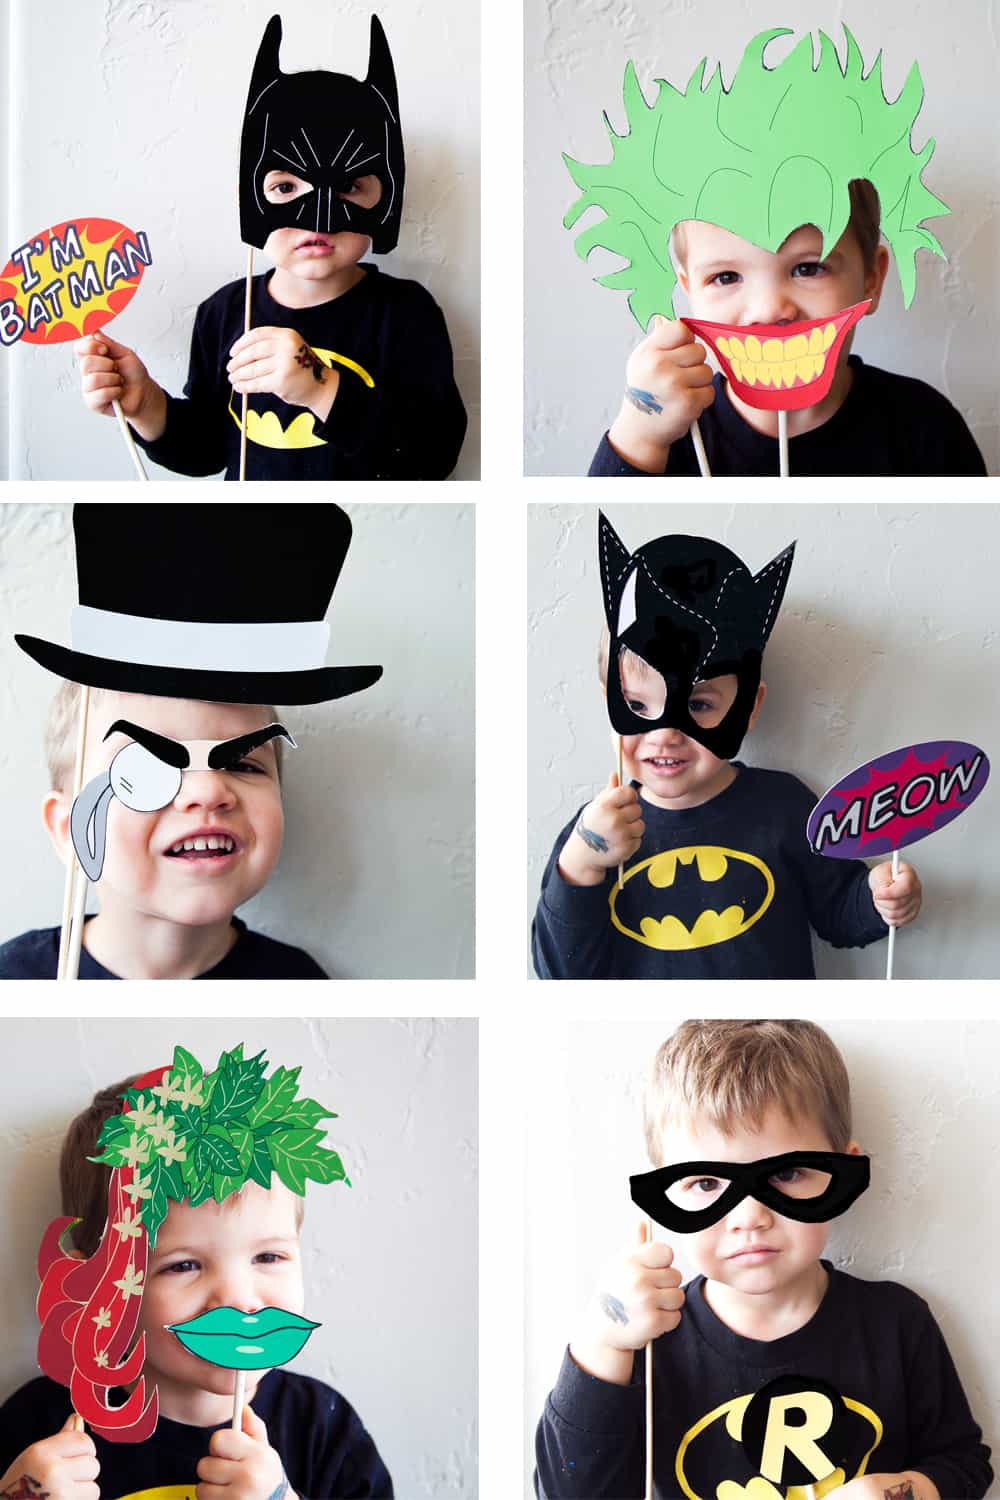 photograph about Free Printable Superhero Photo Booth Props called Batman Social gathering with No cost Photobooth Mask + Prop Printables